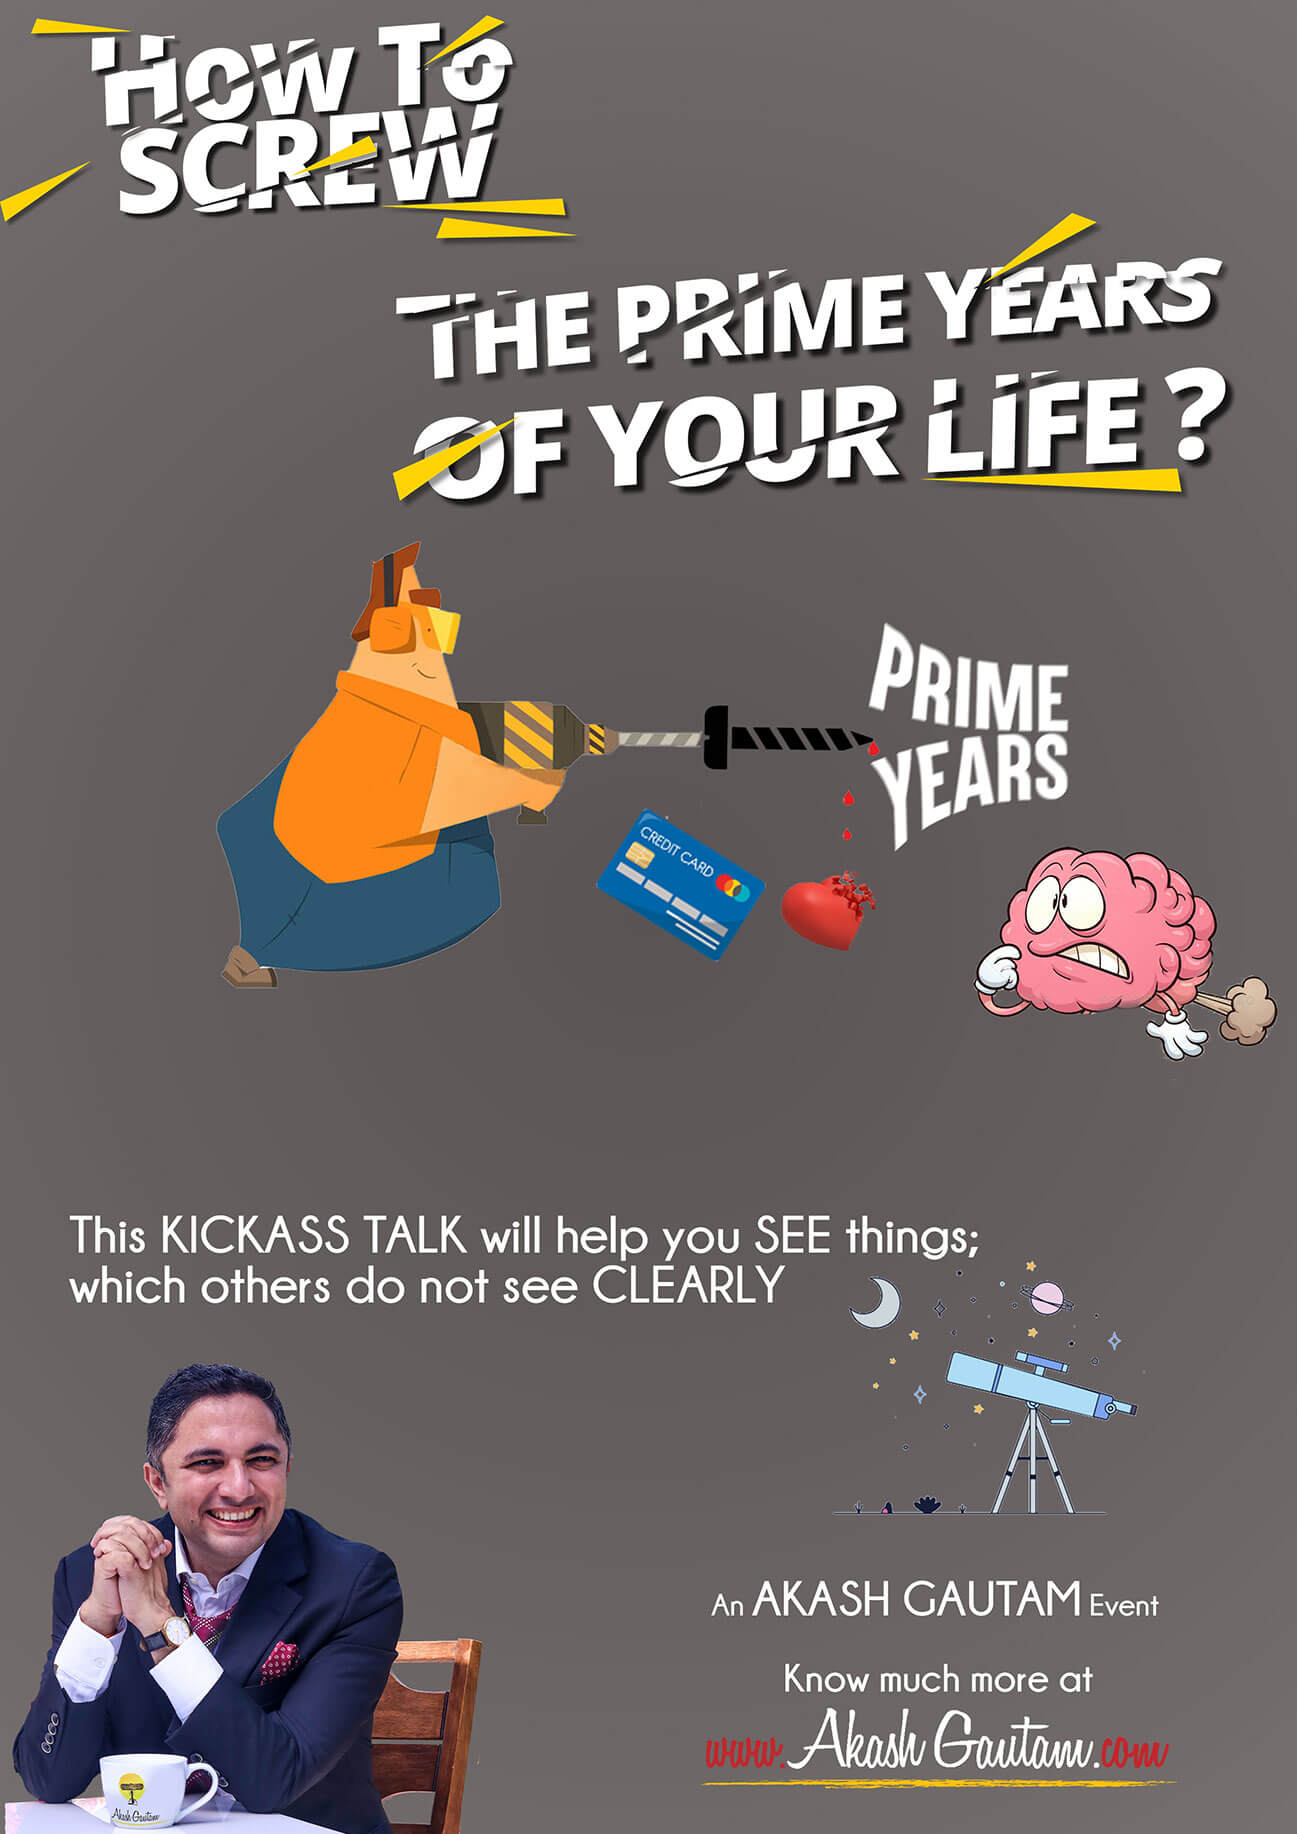 How to screw the prime years of your life by Akash Gautam Motivational Speaker for Youth & Students, college fests